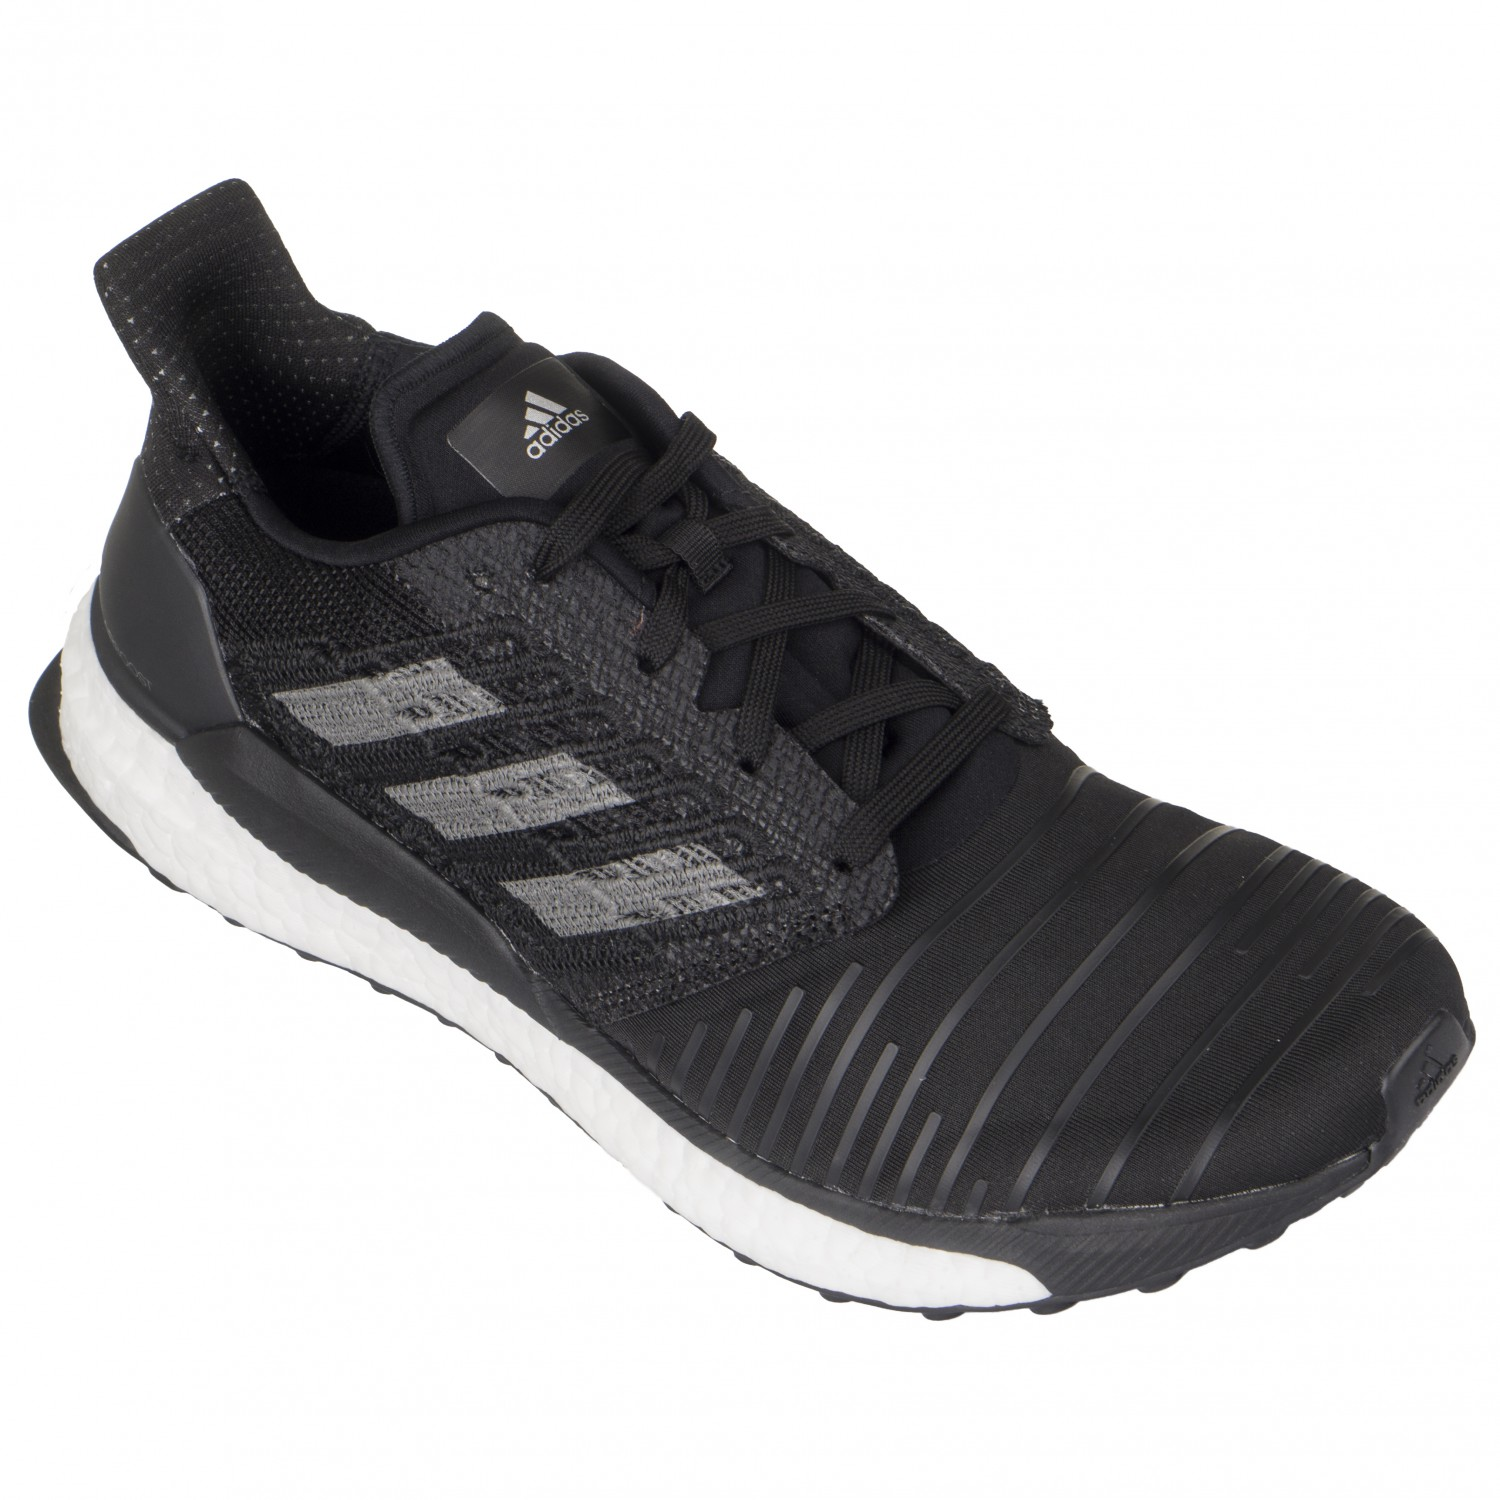 16ce166aa665e Adidas Solar Boost - Running shoes Men s